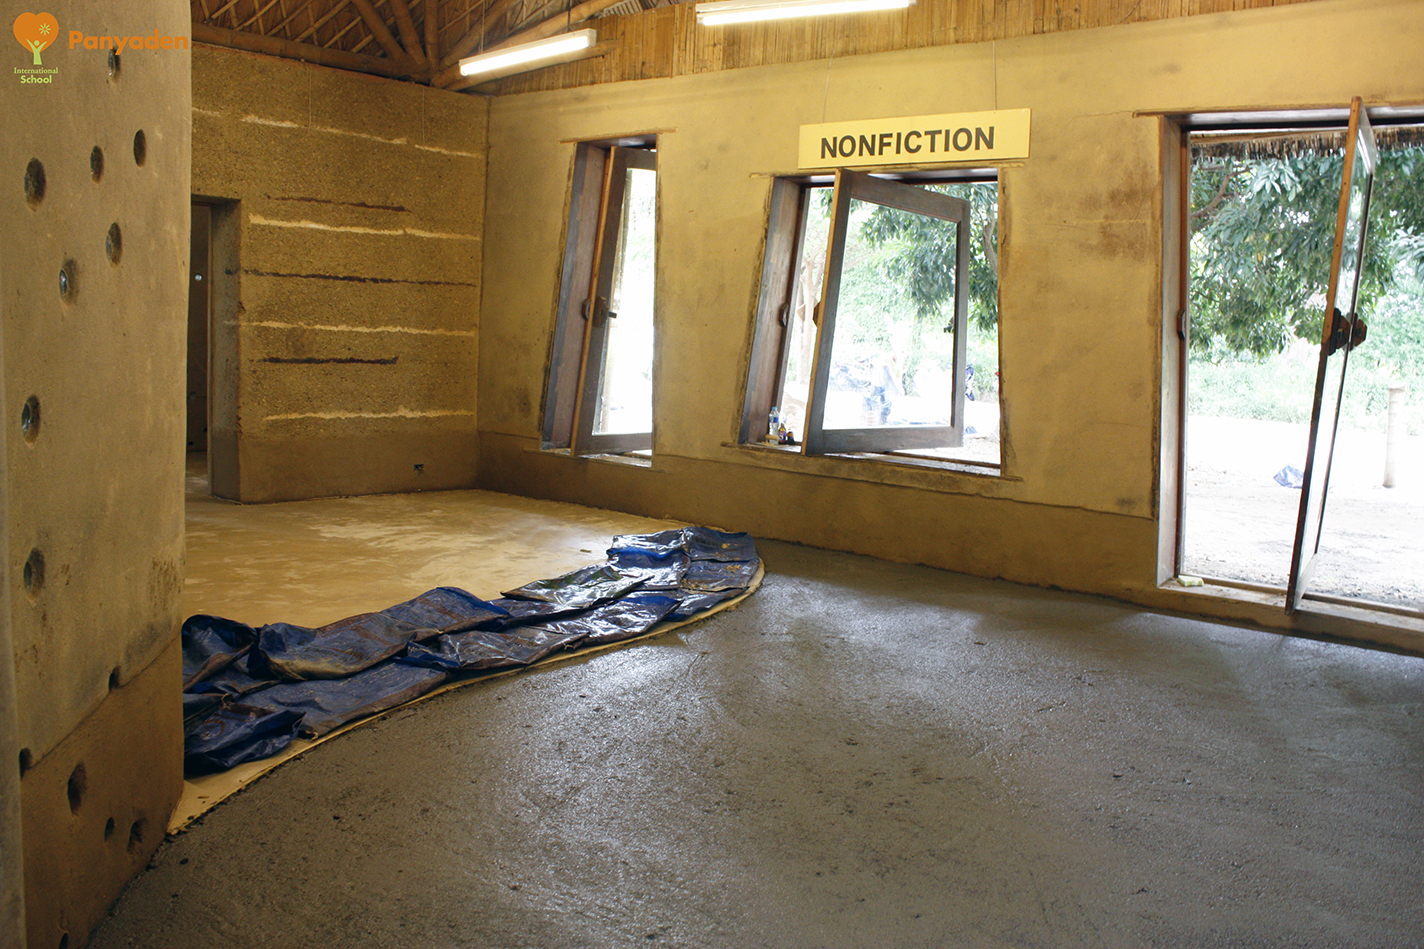 New rammed earth floor for Panyaden